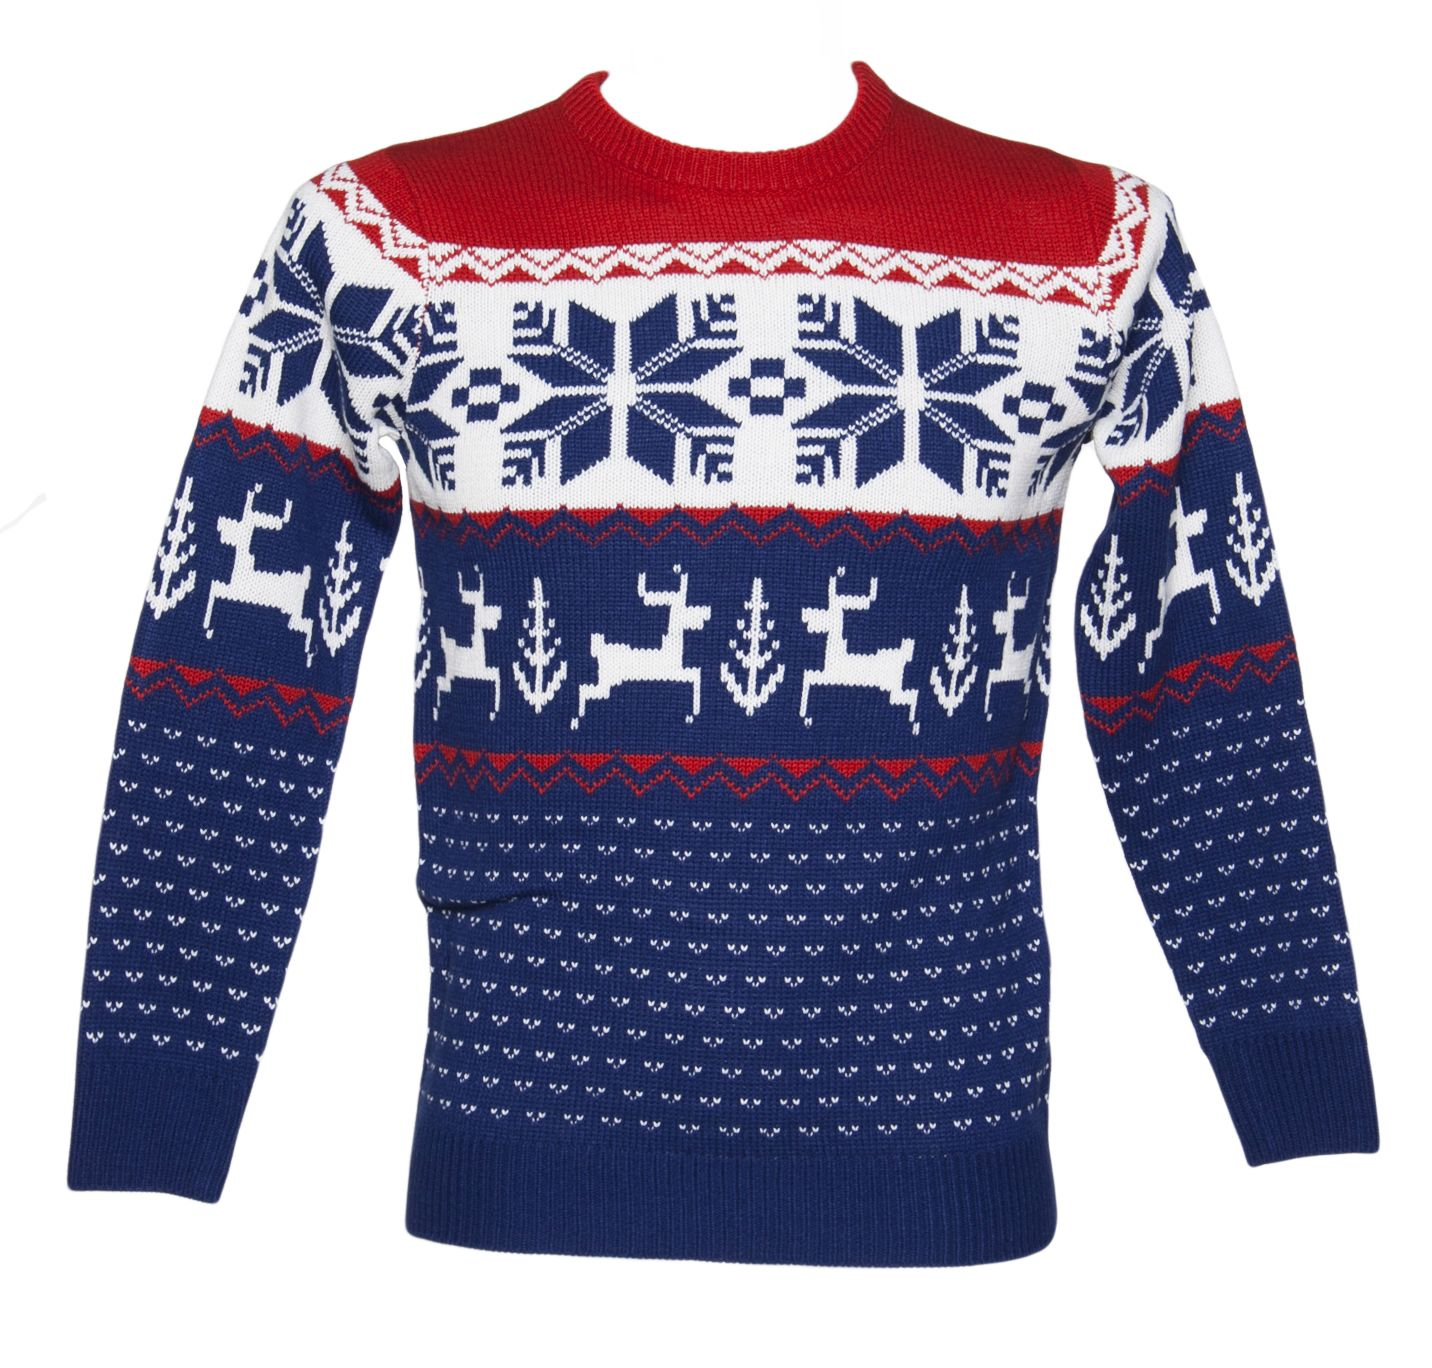 d53c3130169a1 Cheesy Christmas Jumpers offer exactly that